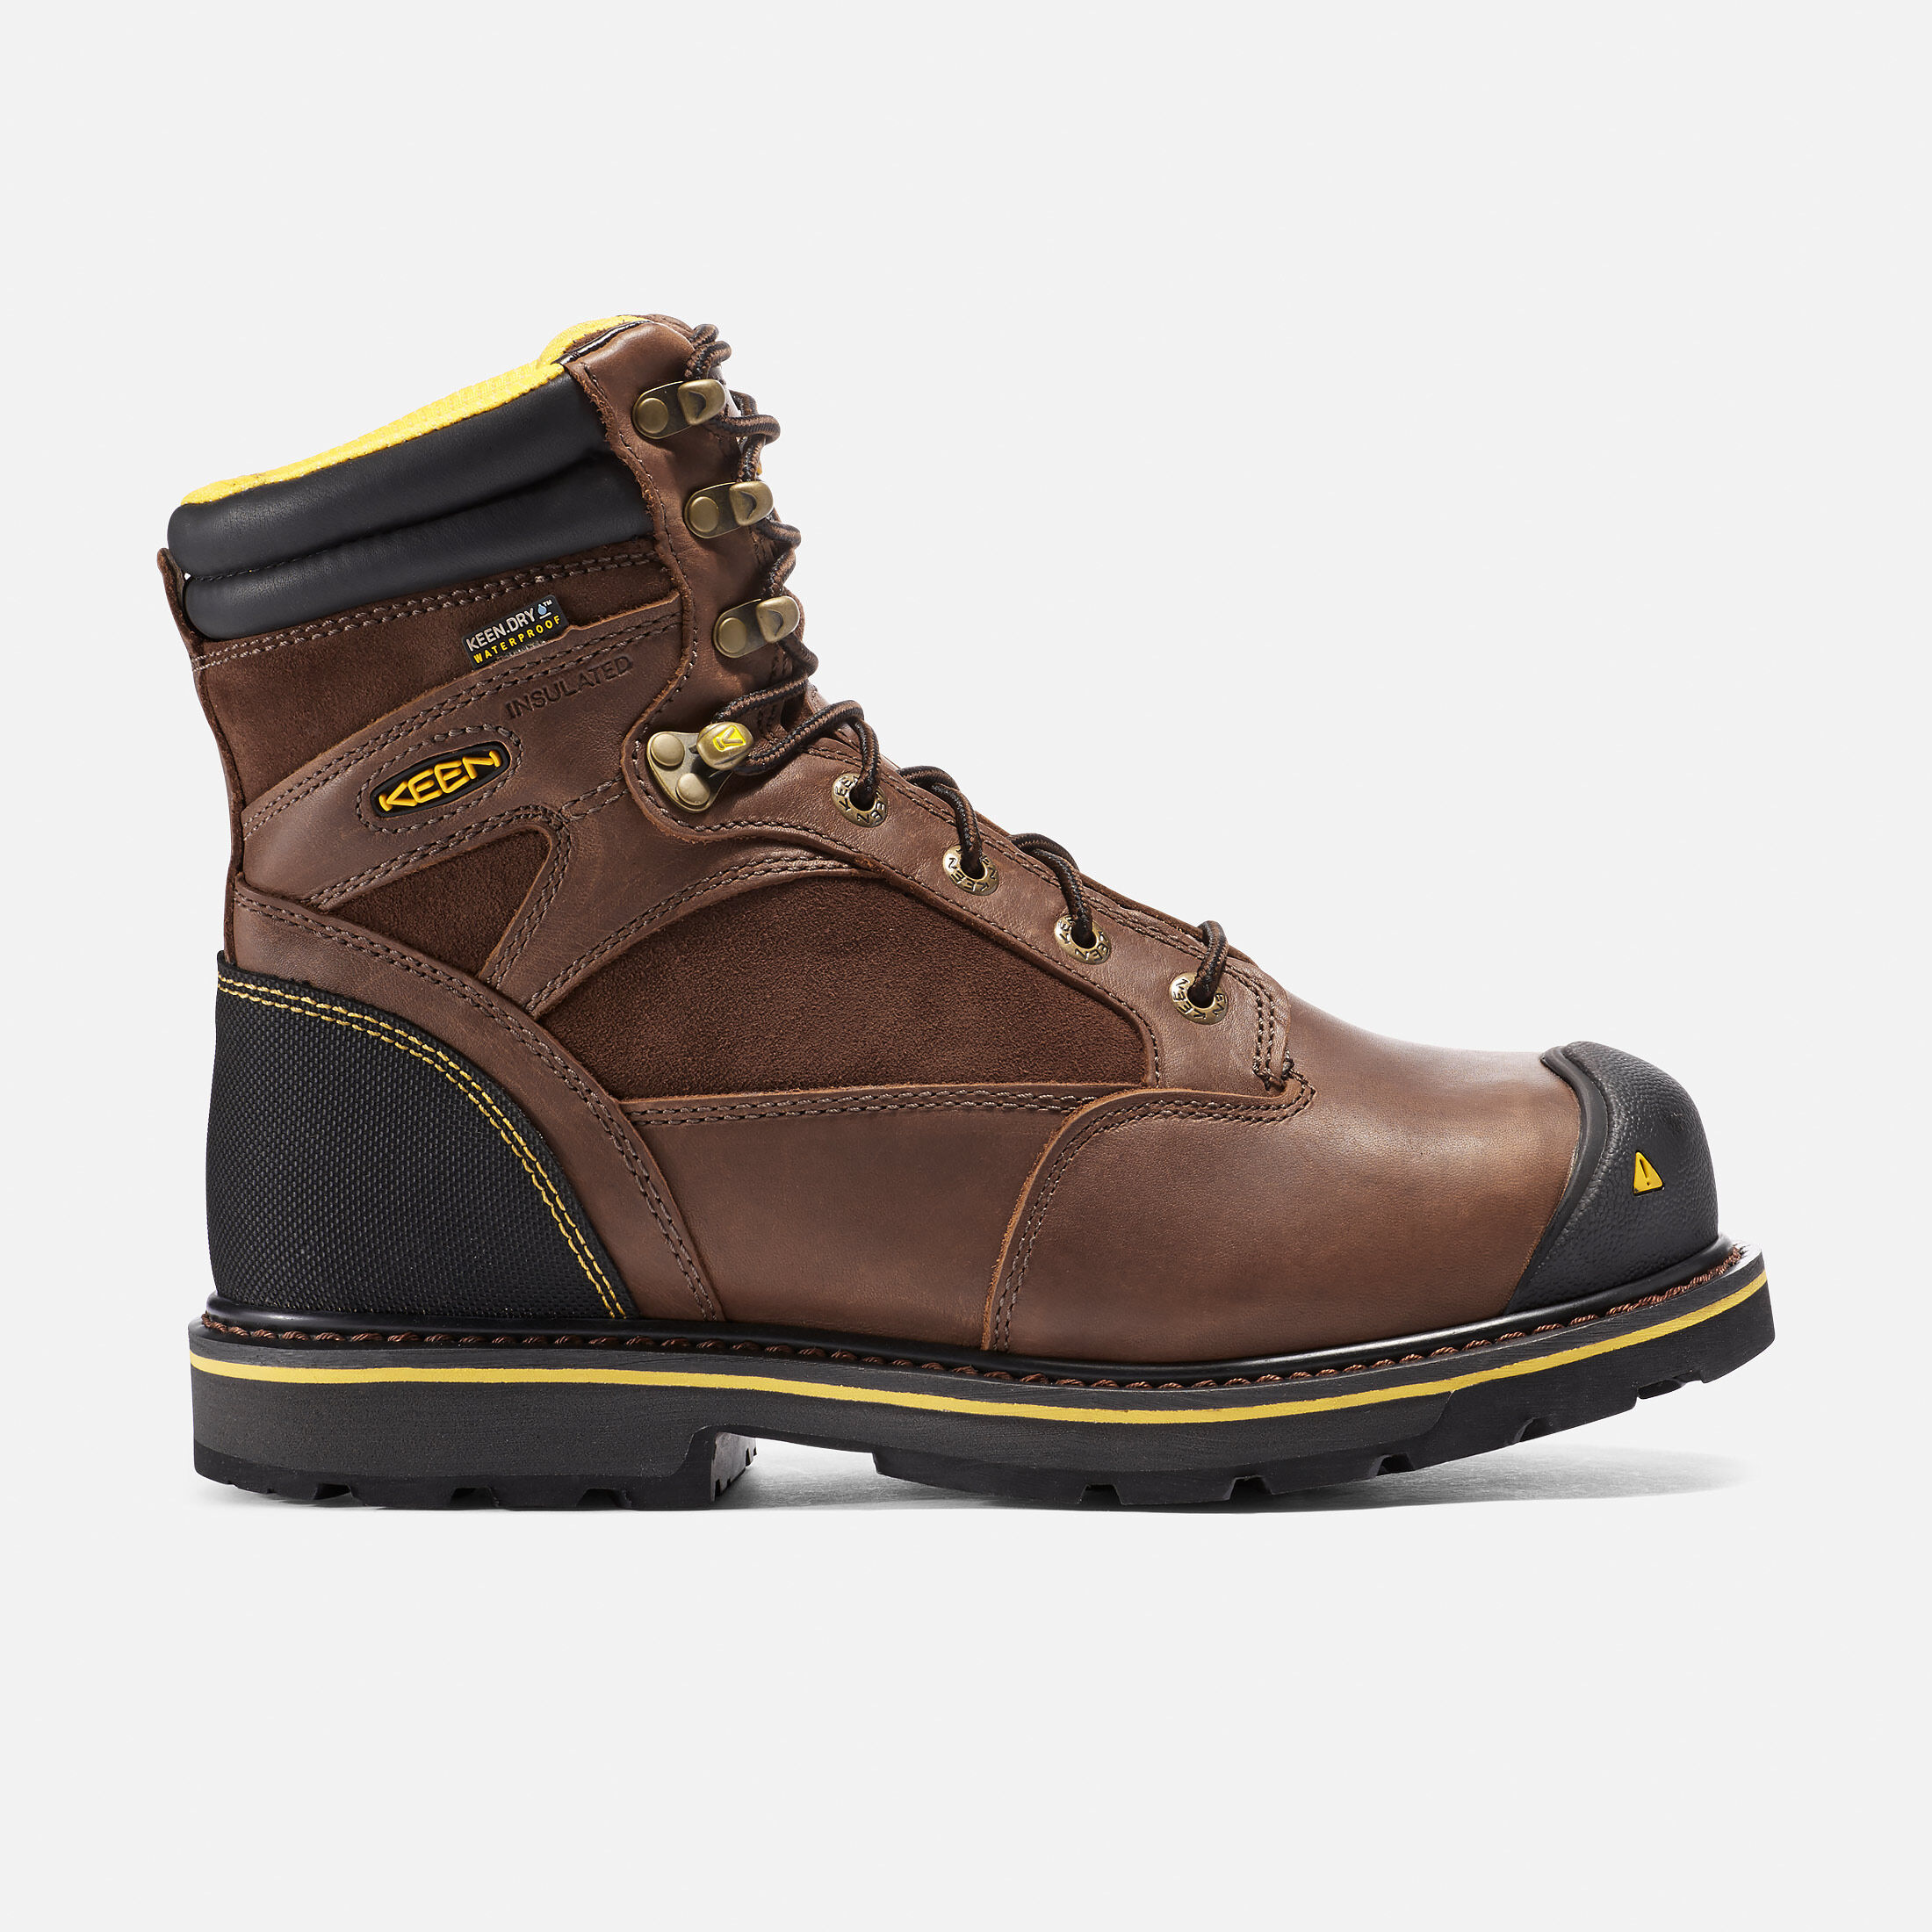 Men's Sheridan Insulated Waterproof Boot (Composite Toe) in Cascade Brown -  large view.